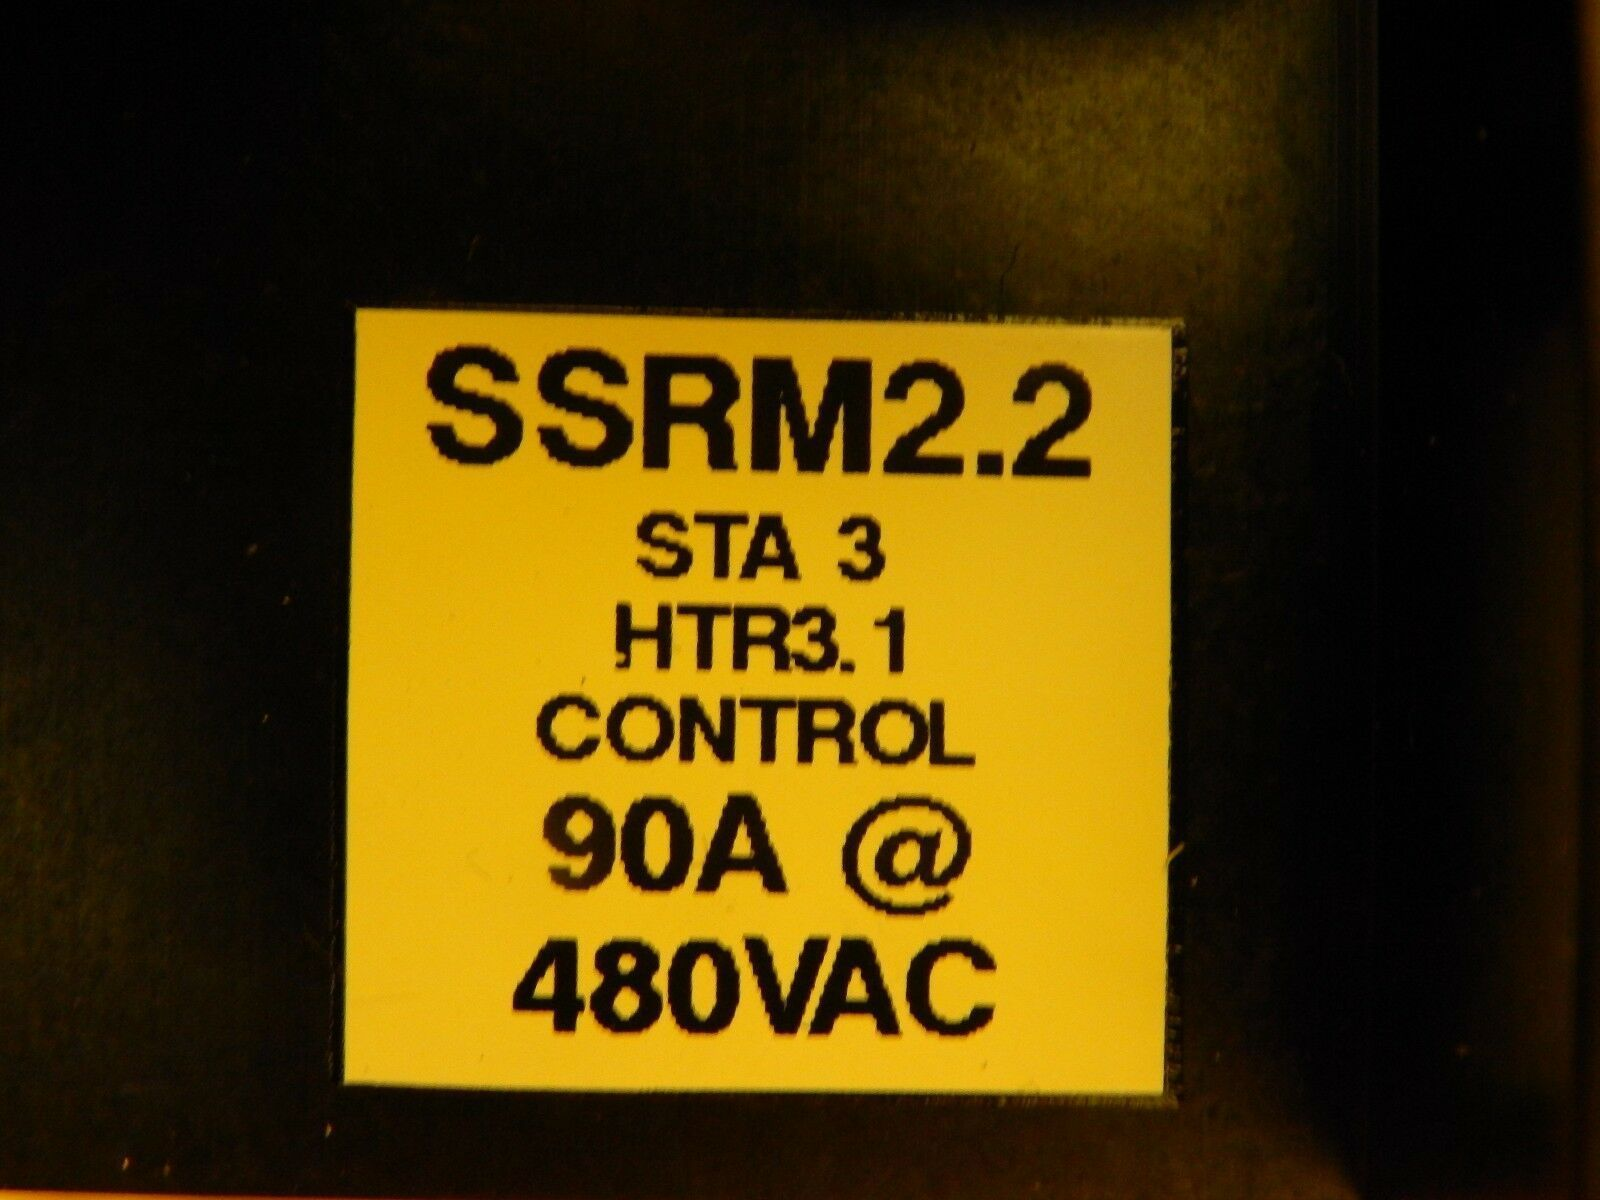 Carlo Gavazzi SSRM2.2 Relay Assembly RA4890-D12 90A @ 480VAC Used Working